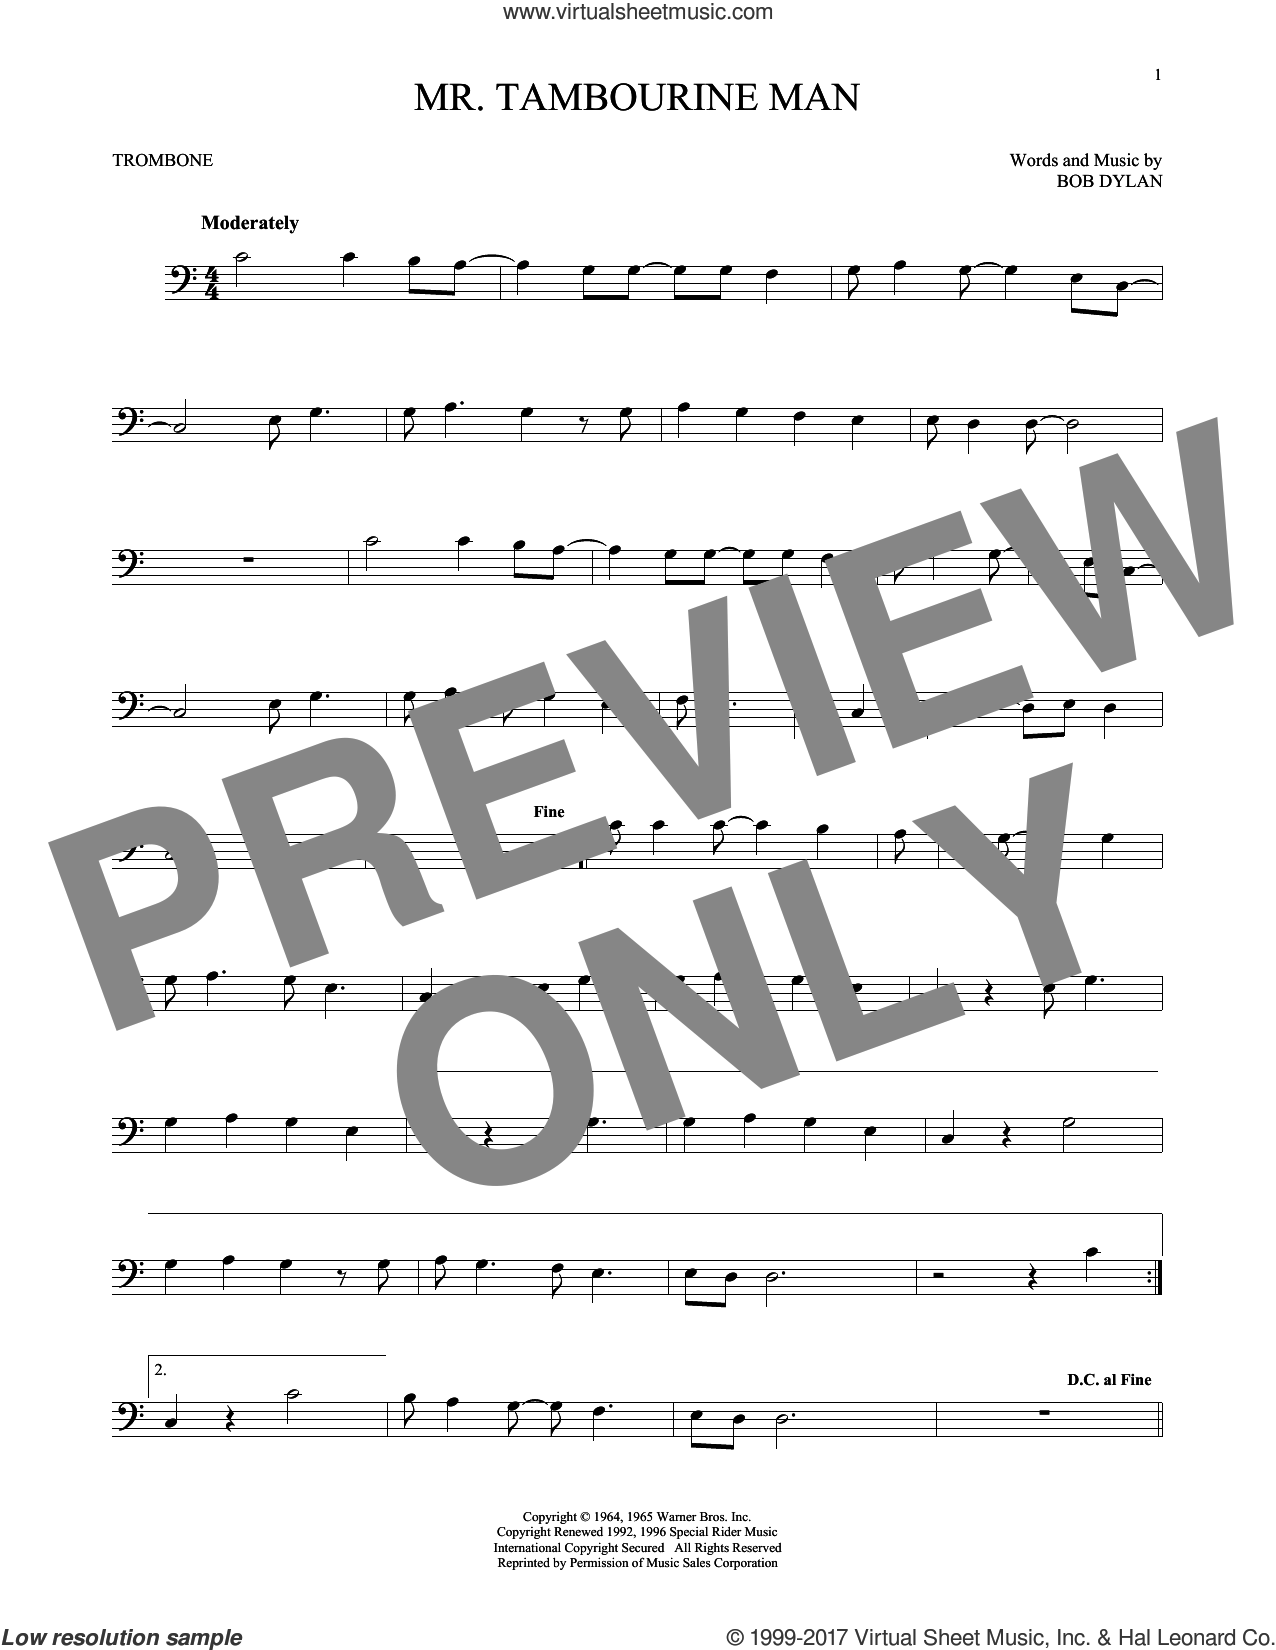 Mr. Tambourine Man sheet music for trombone solo by Bob Dylan, intermediate